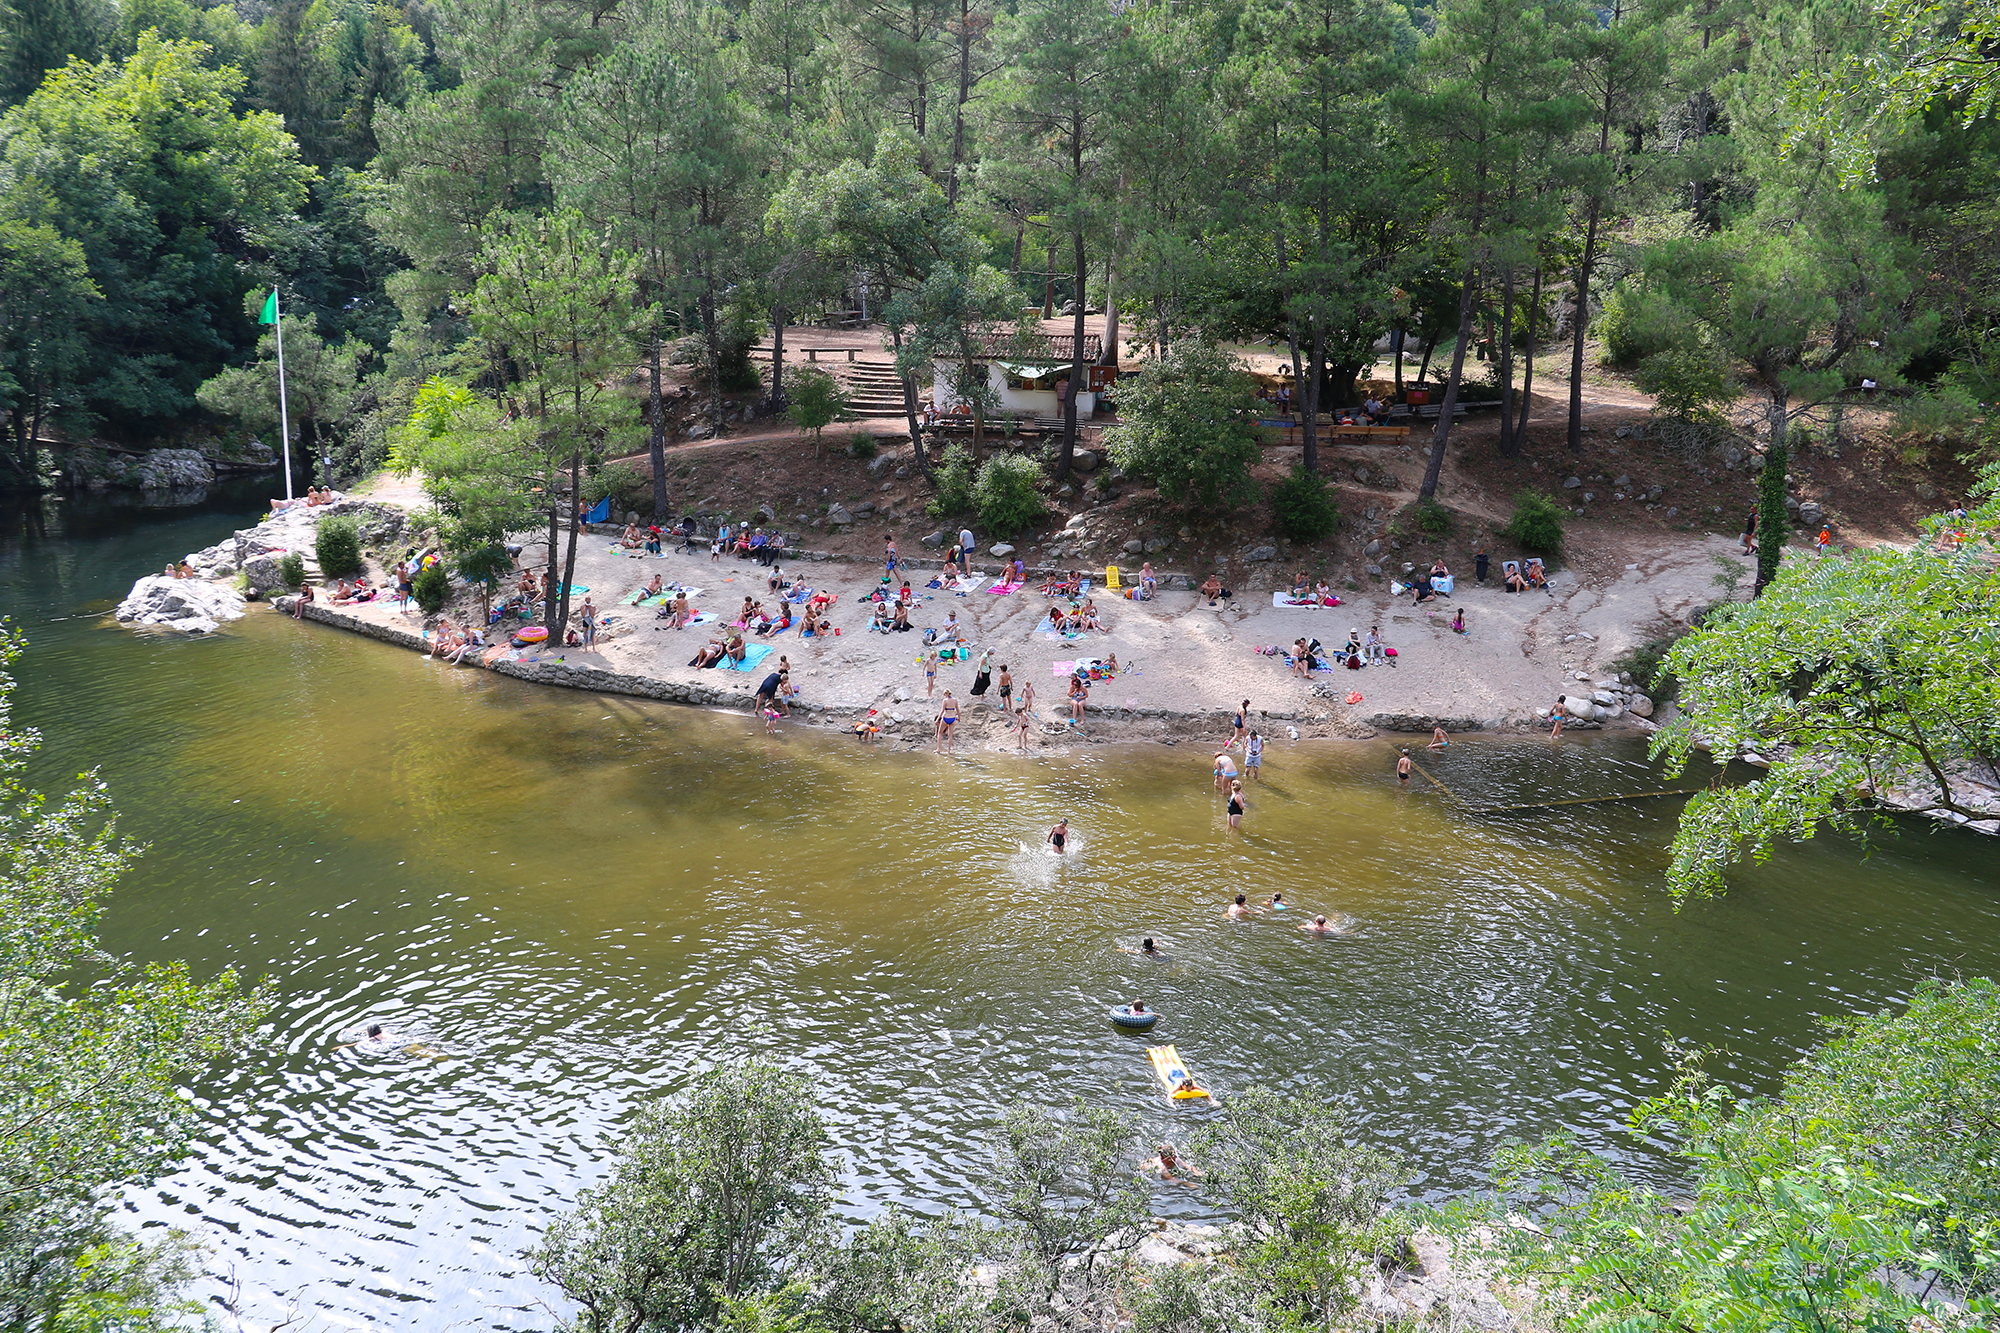 Rivers, coves and small beaches along the edges of the River Eyrieux : Fontugne beach